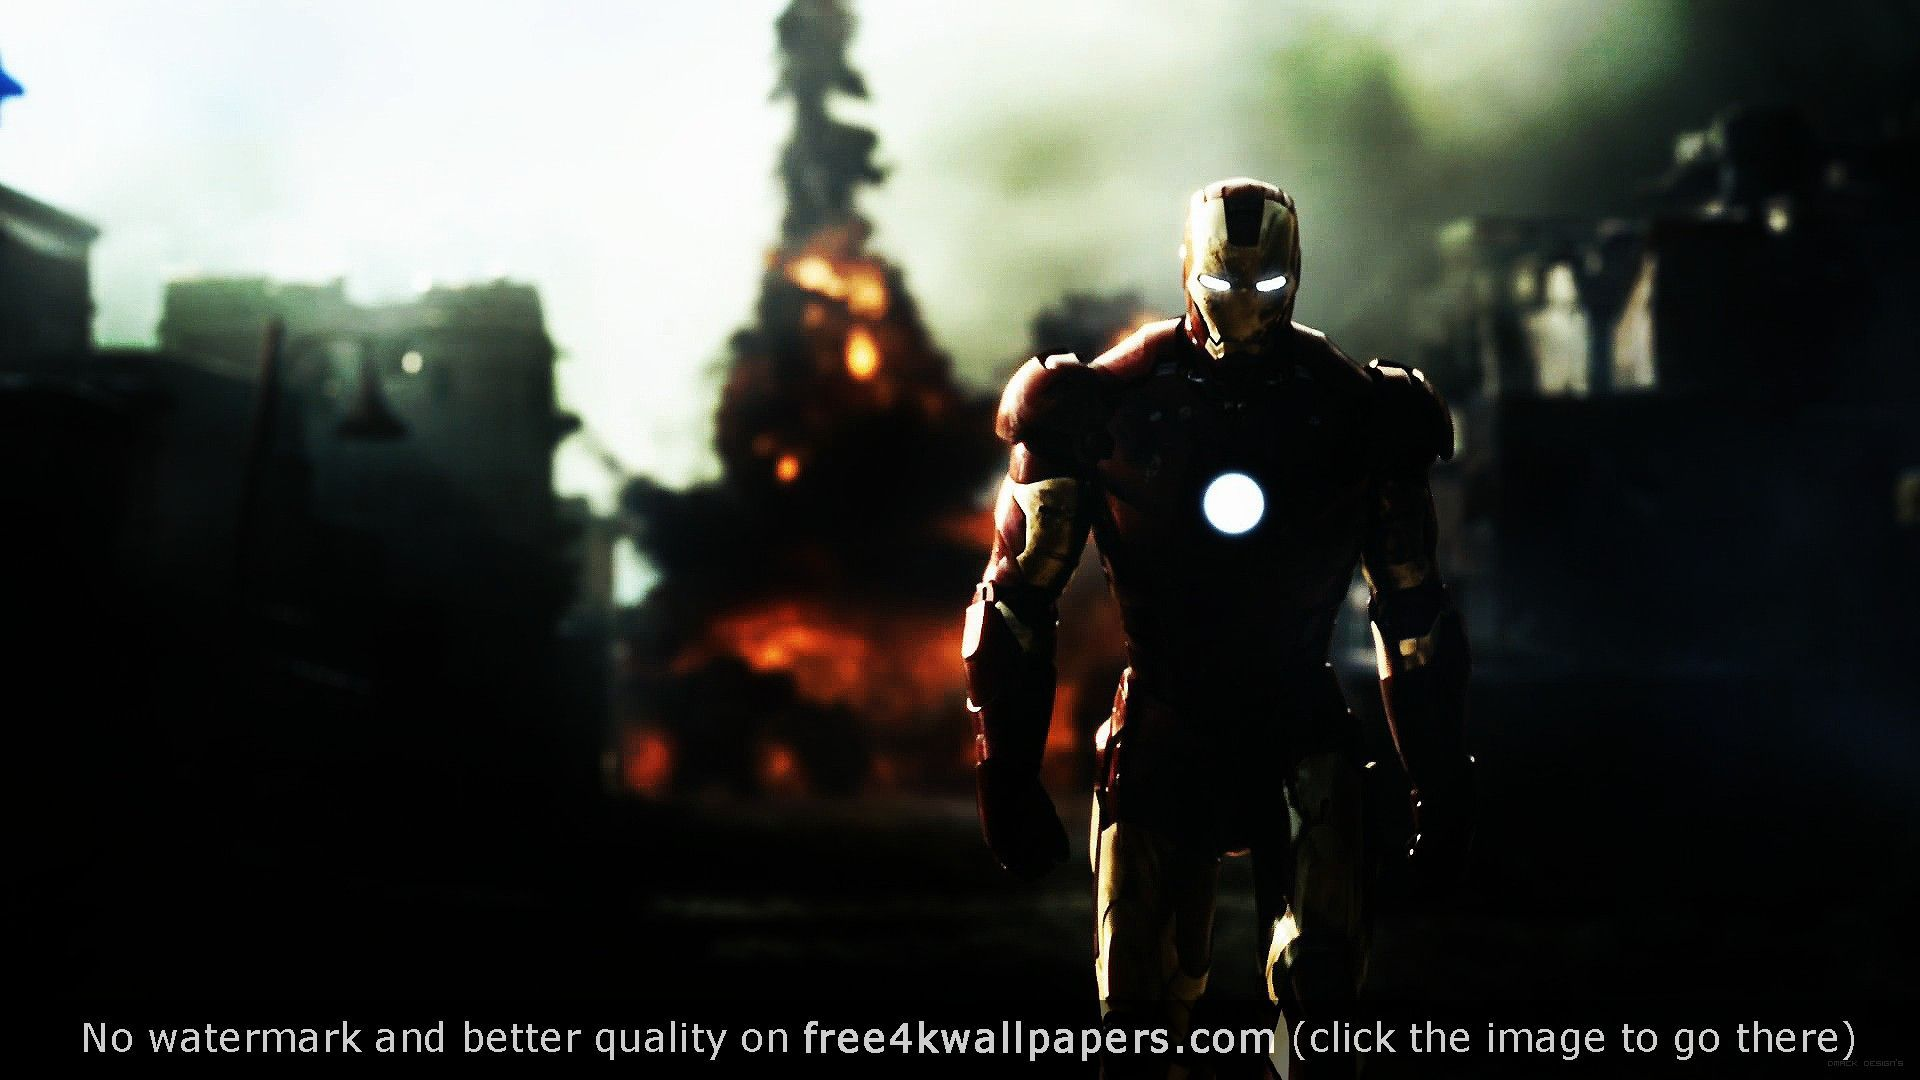 Iron Man Hd 5611 4K or HD wallpaper for your PC Mac or Mobile device 1920x1080